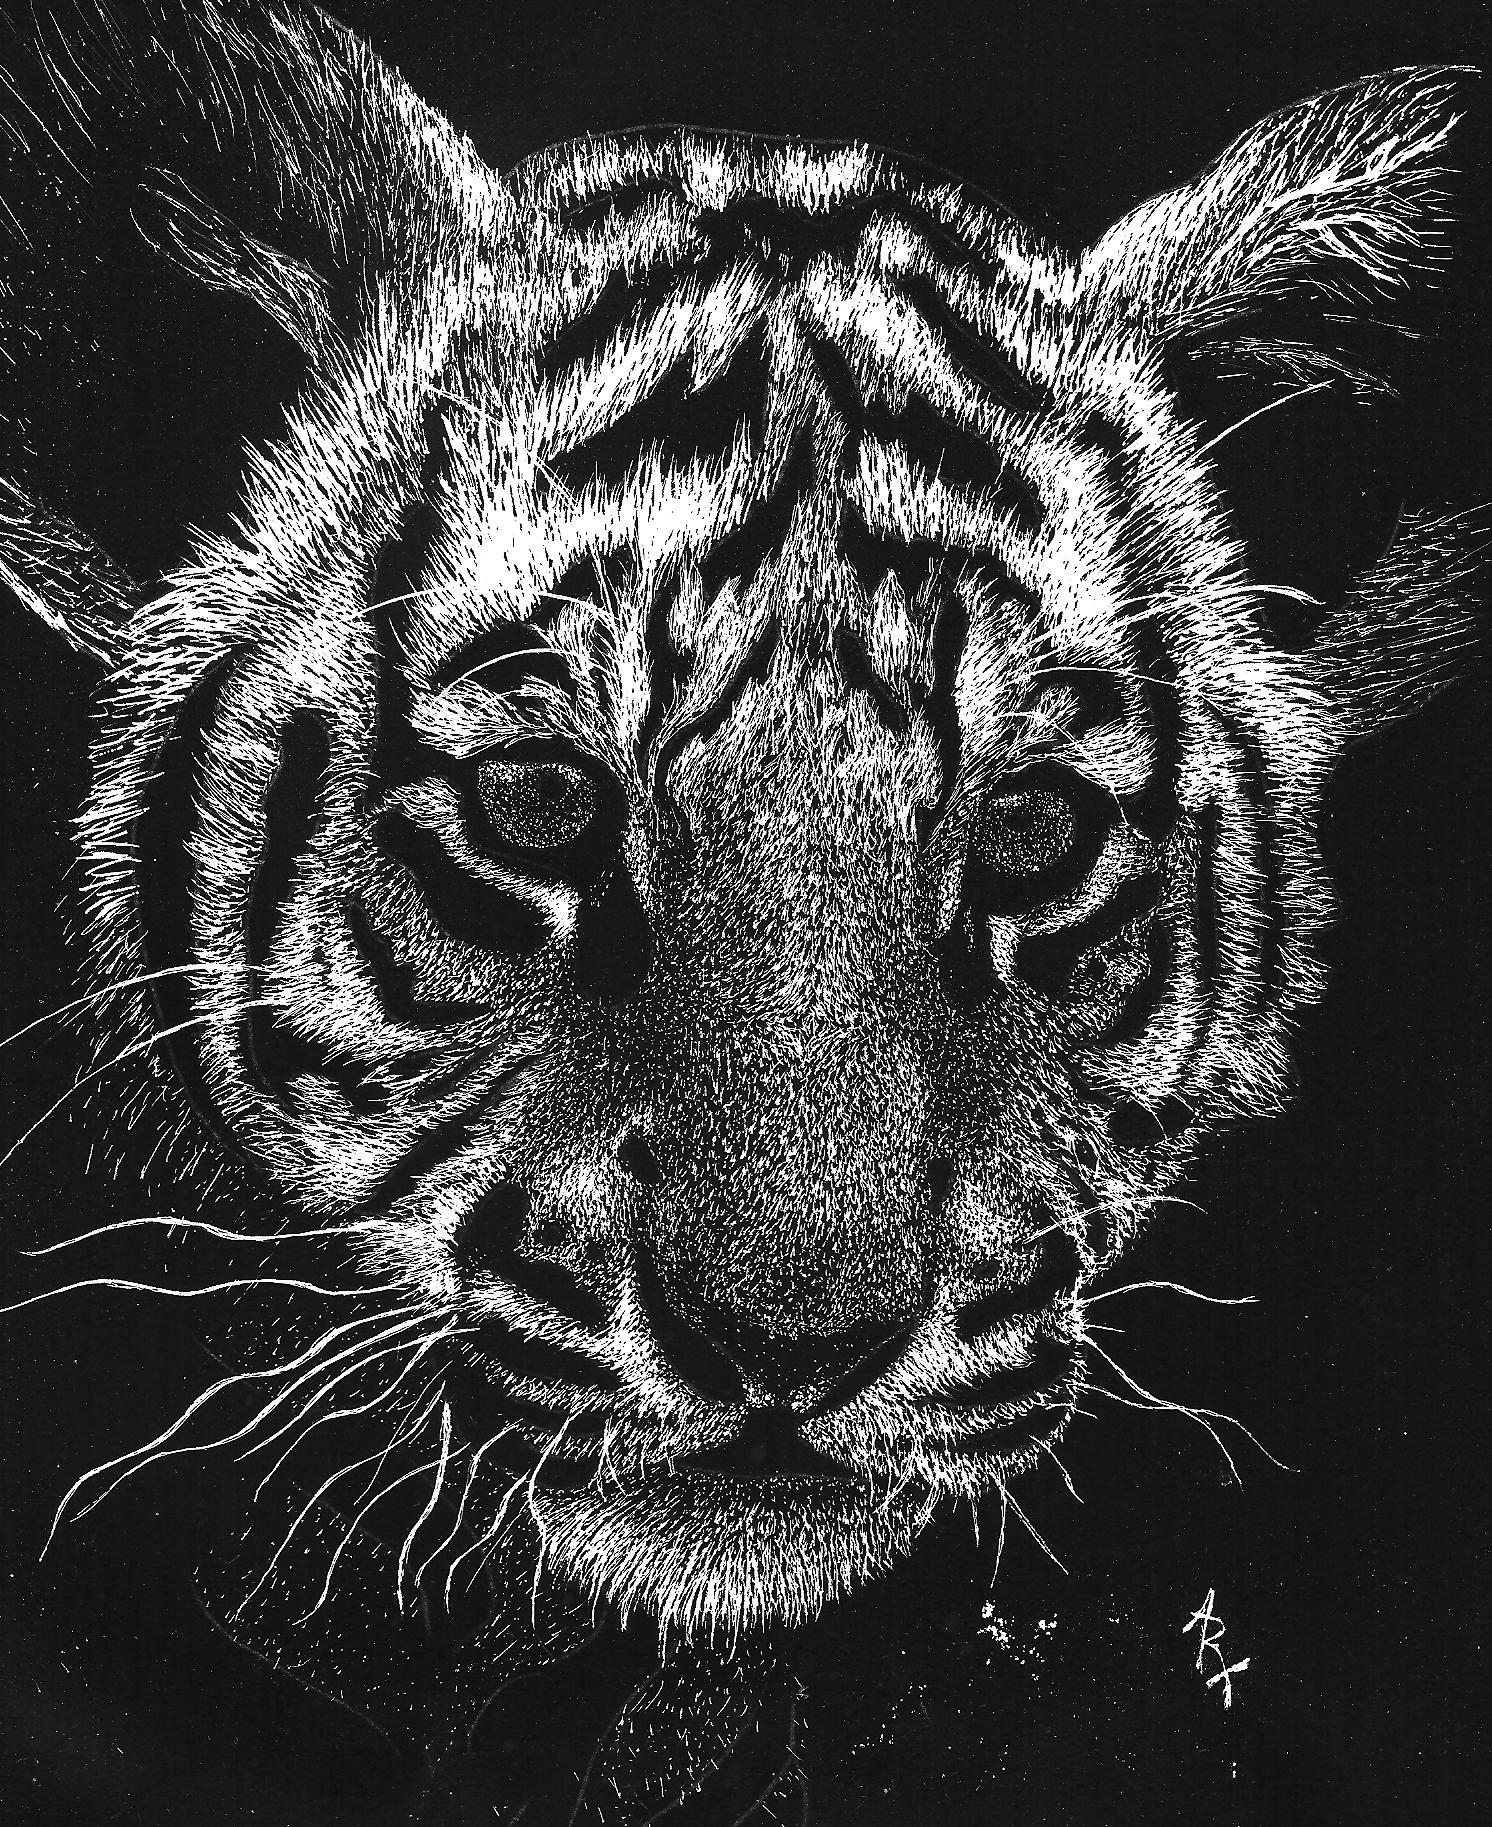 tiger drawing amur tiger face big cat ink illustration drawing by loren drawing tiger